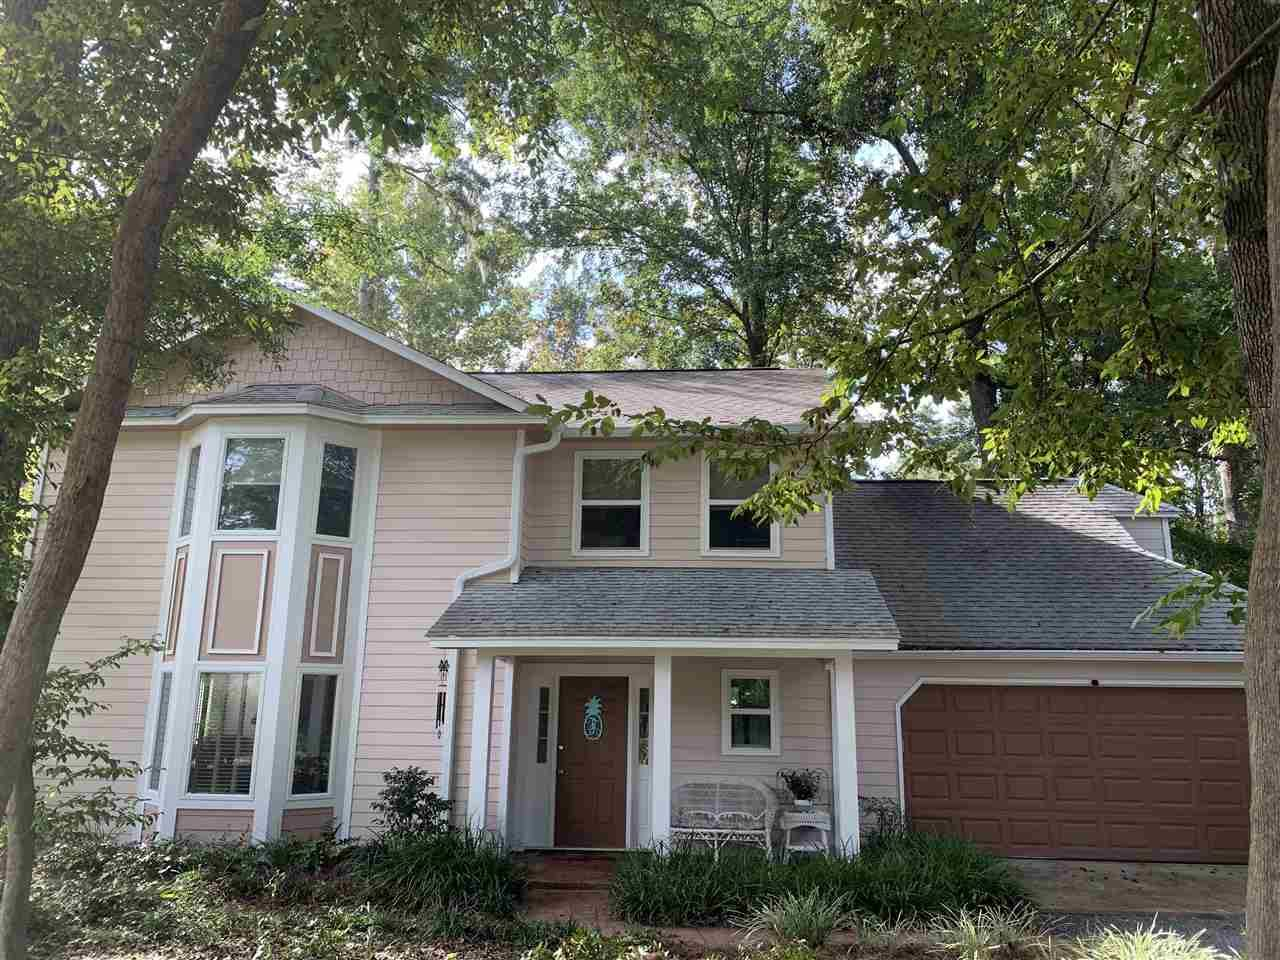 2305 Forsythe Court, Tallahassee, FL 32309 - MLS#: 323432